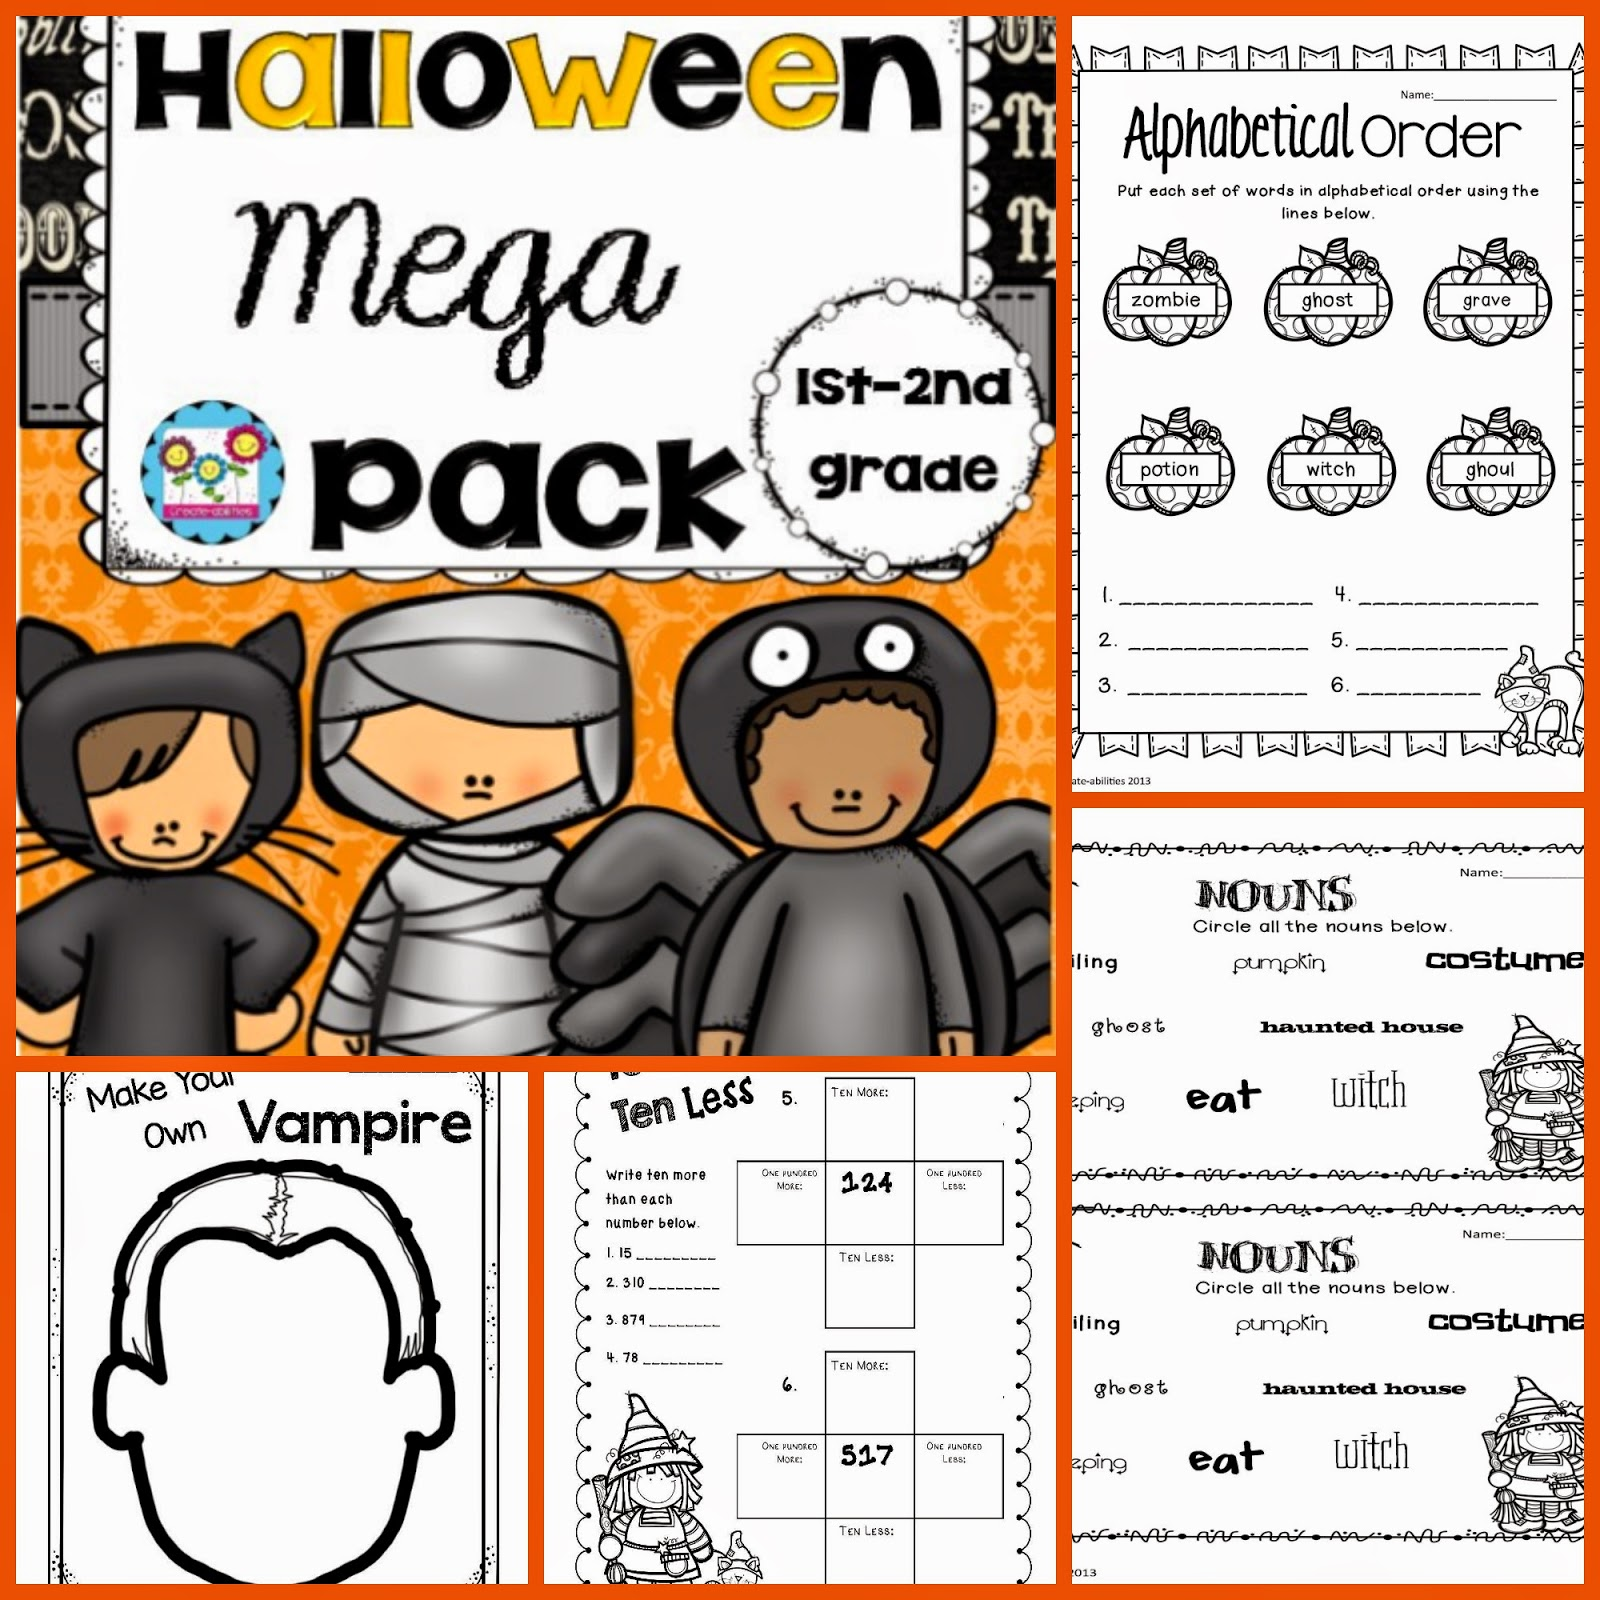 http://www.teacherspayteachers.com/Product/Halloween-Mega-Pack-Language-Arts-Writing-and-Math-Activities-Grade-1-2-1474607